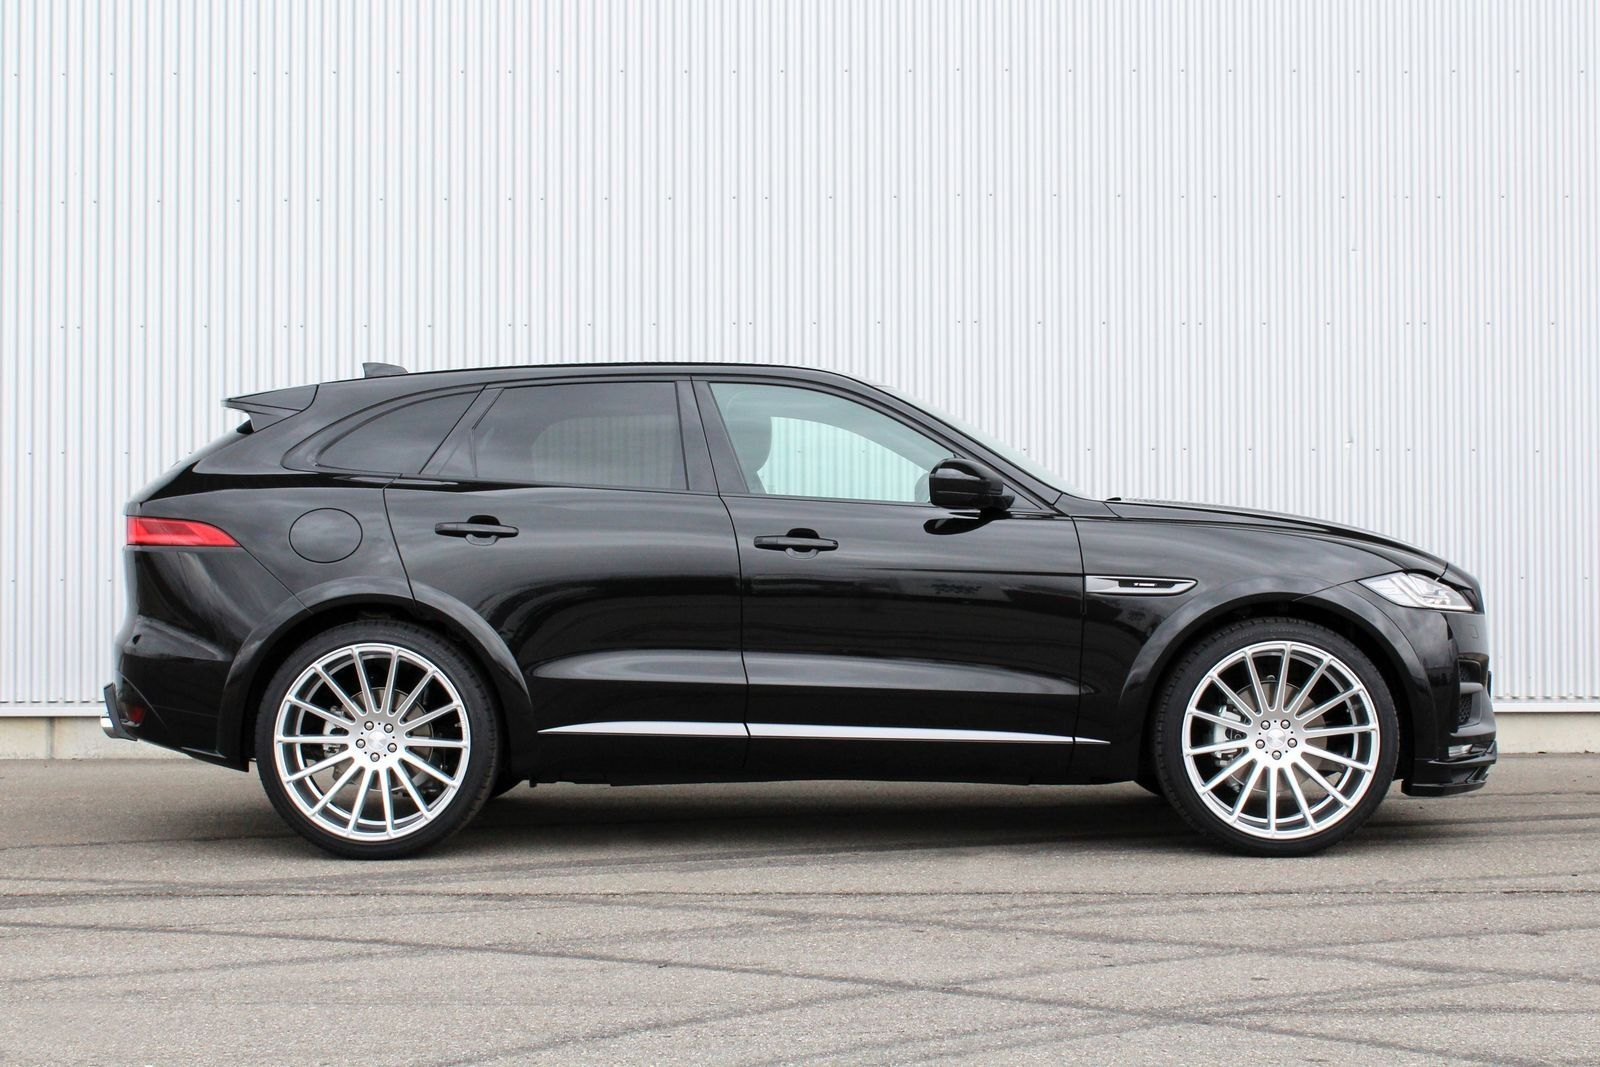 All Black Sinister Jaguar F Pace Gets Custom Parts In 2020 Jaguar Fpace Jaguar Jaguar Car